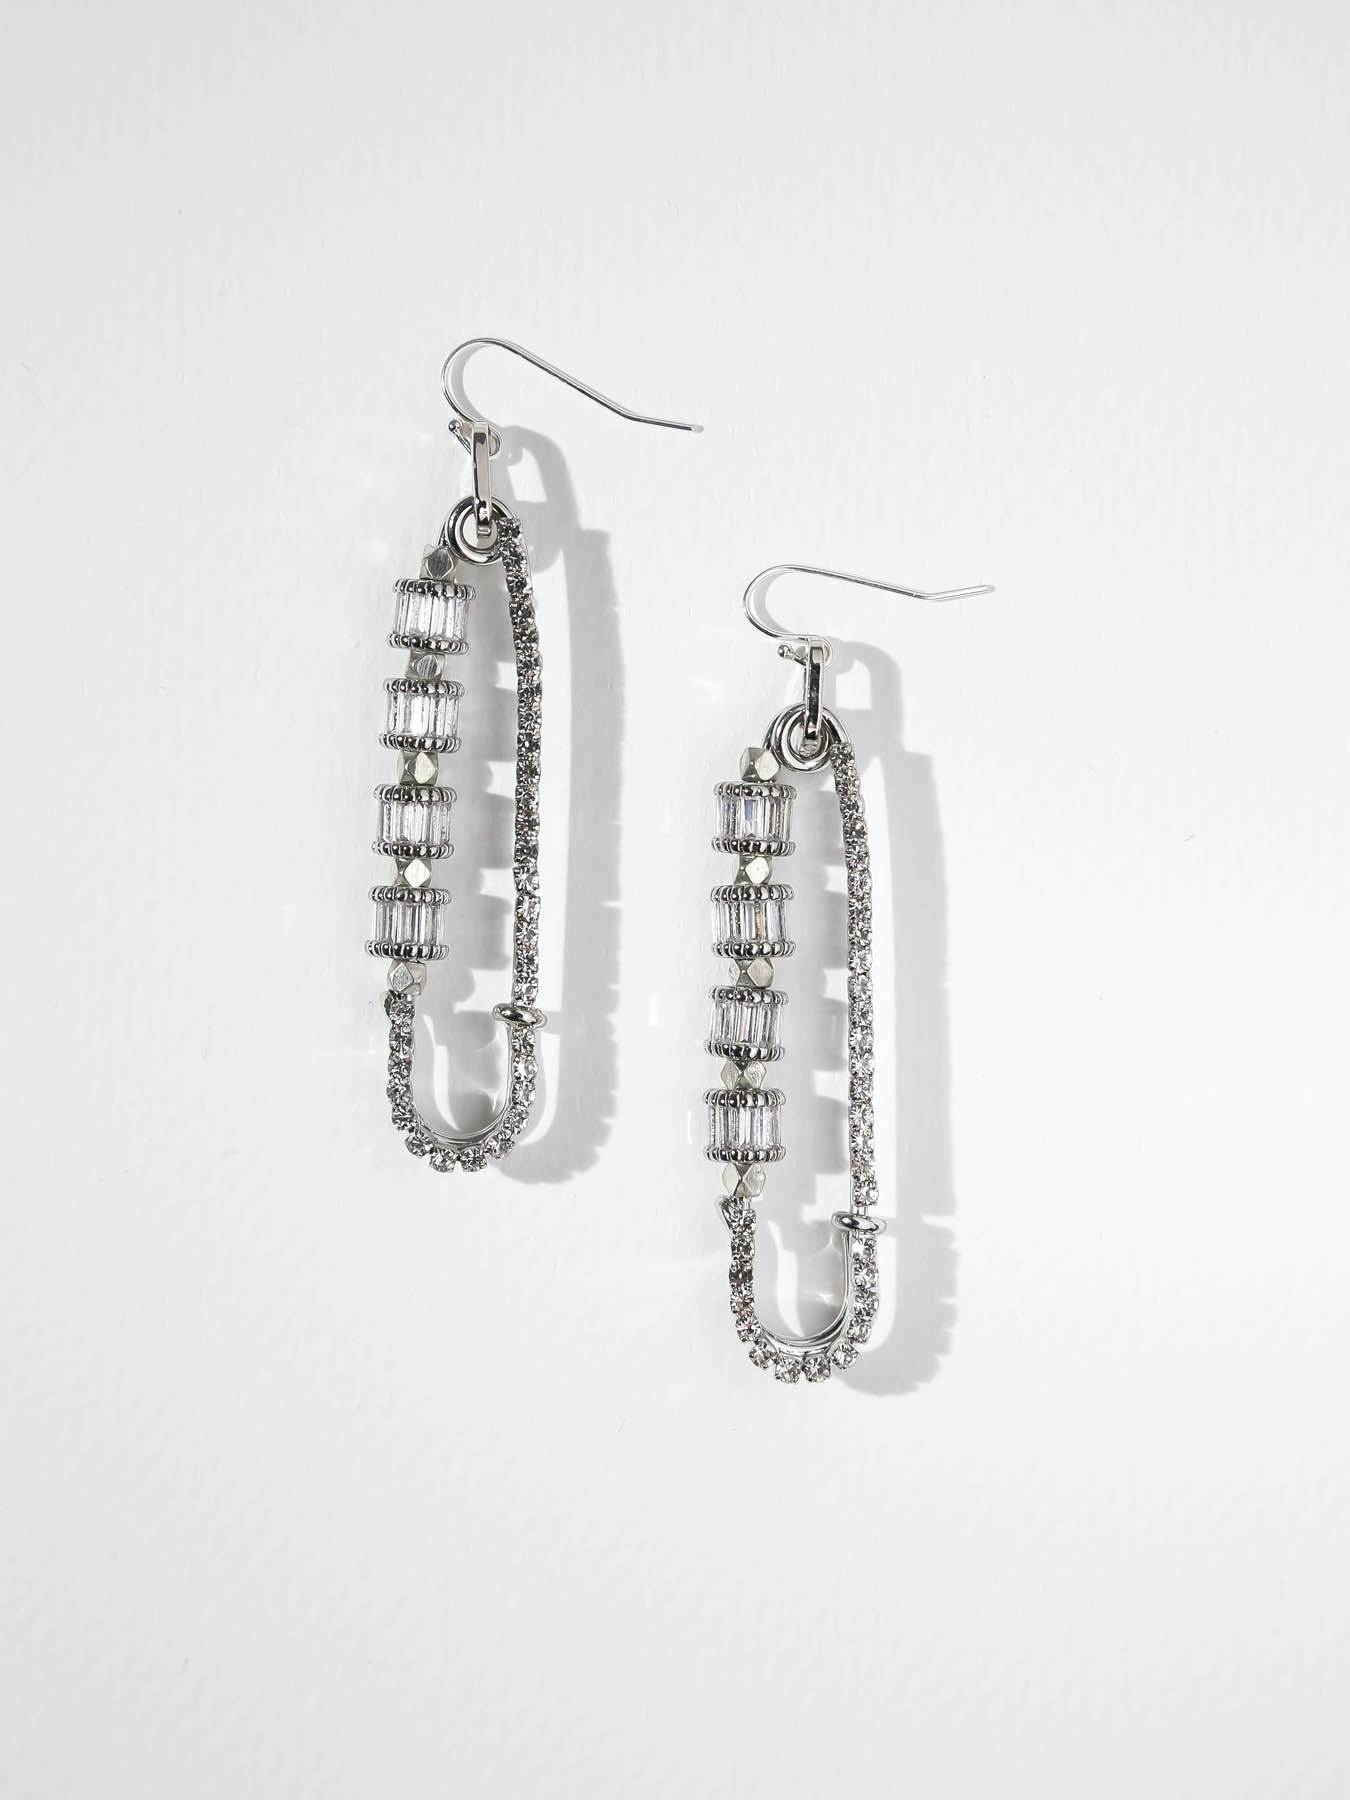 The Barrique Earrings